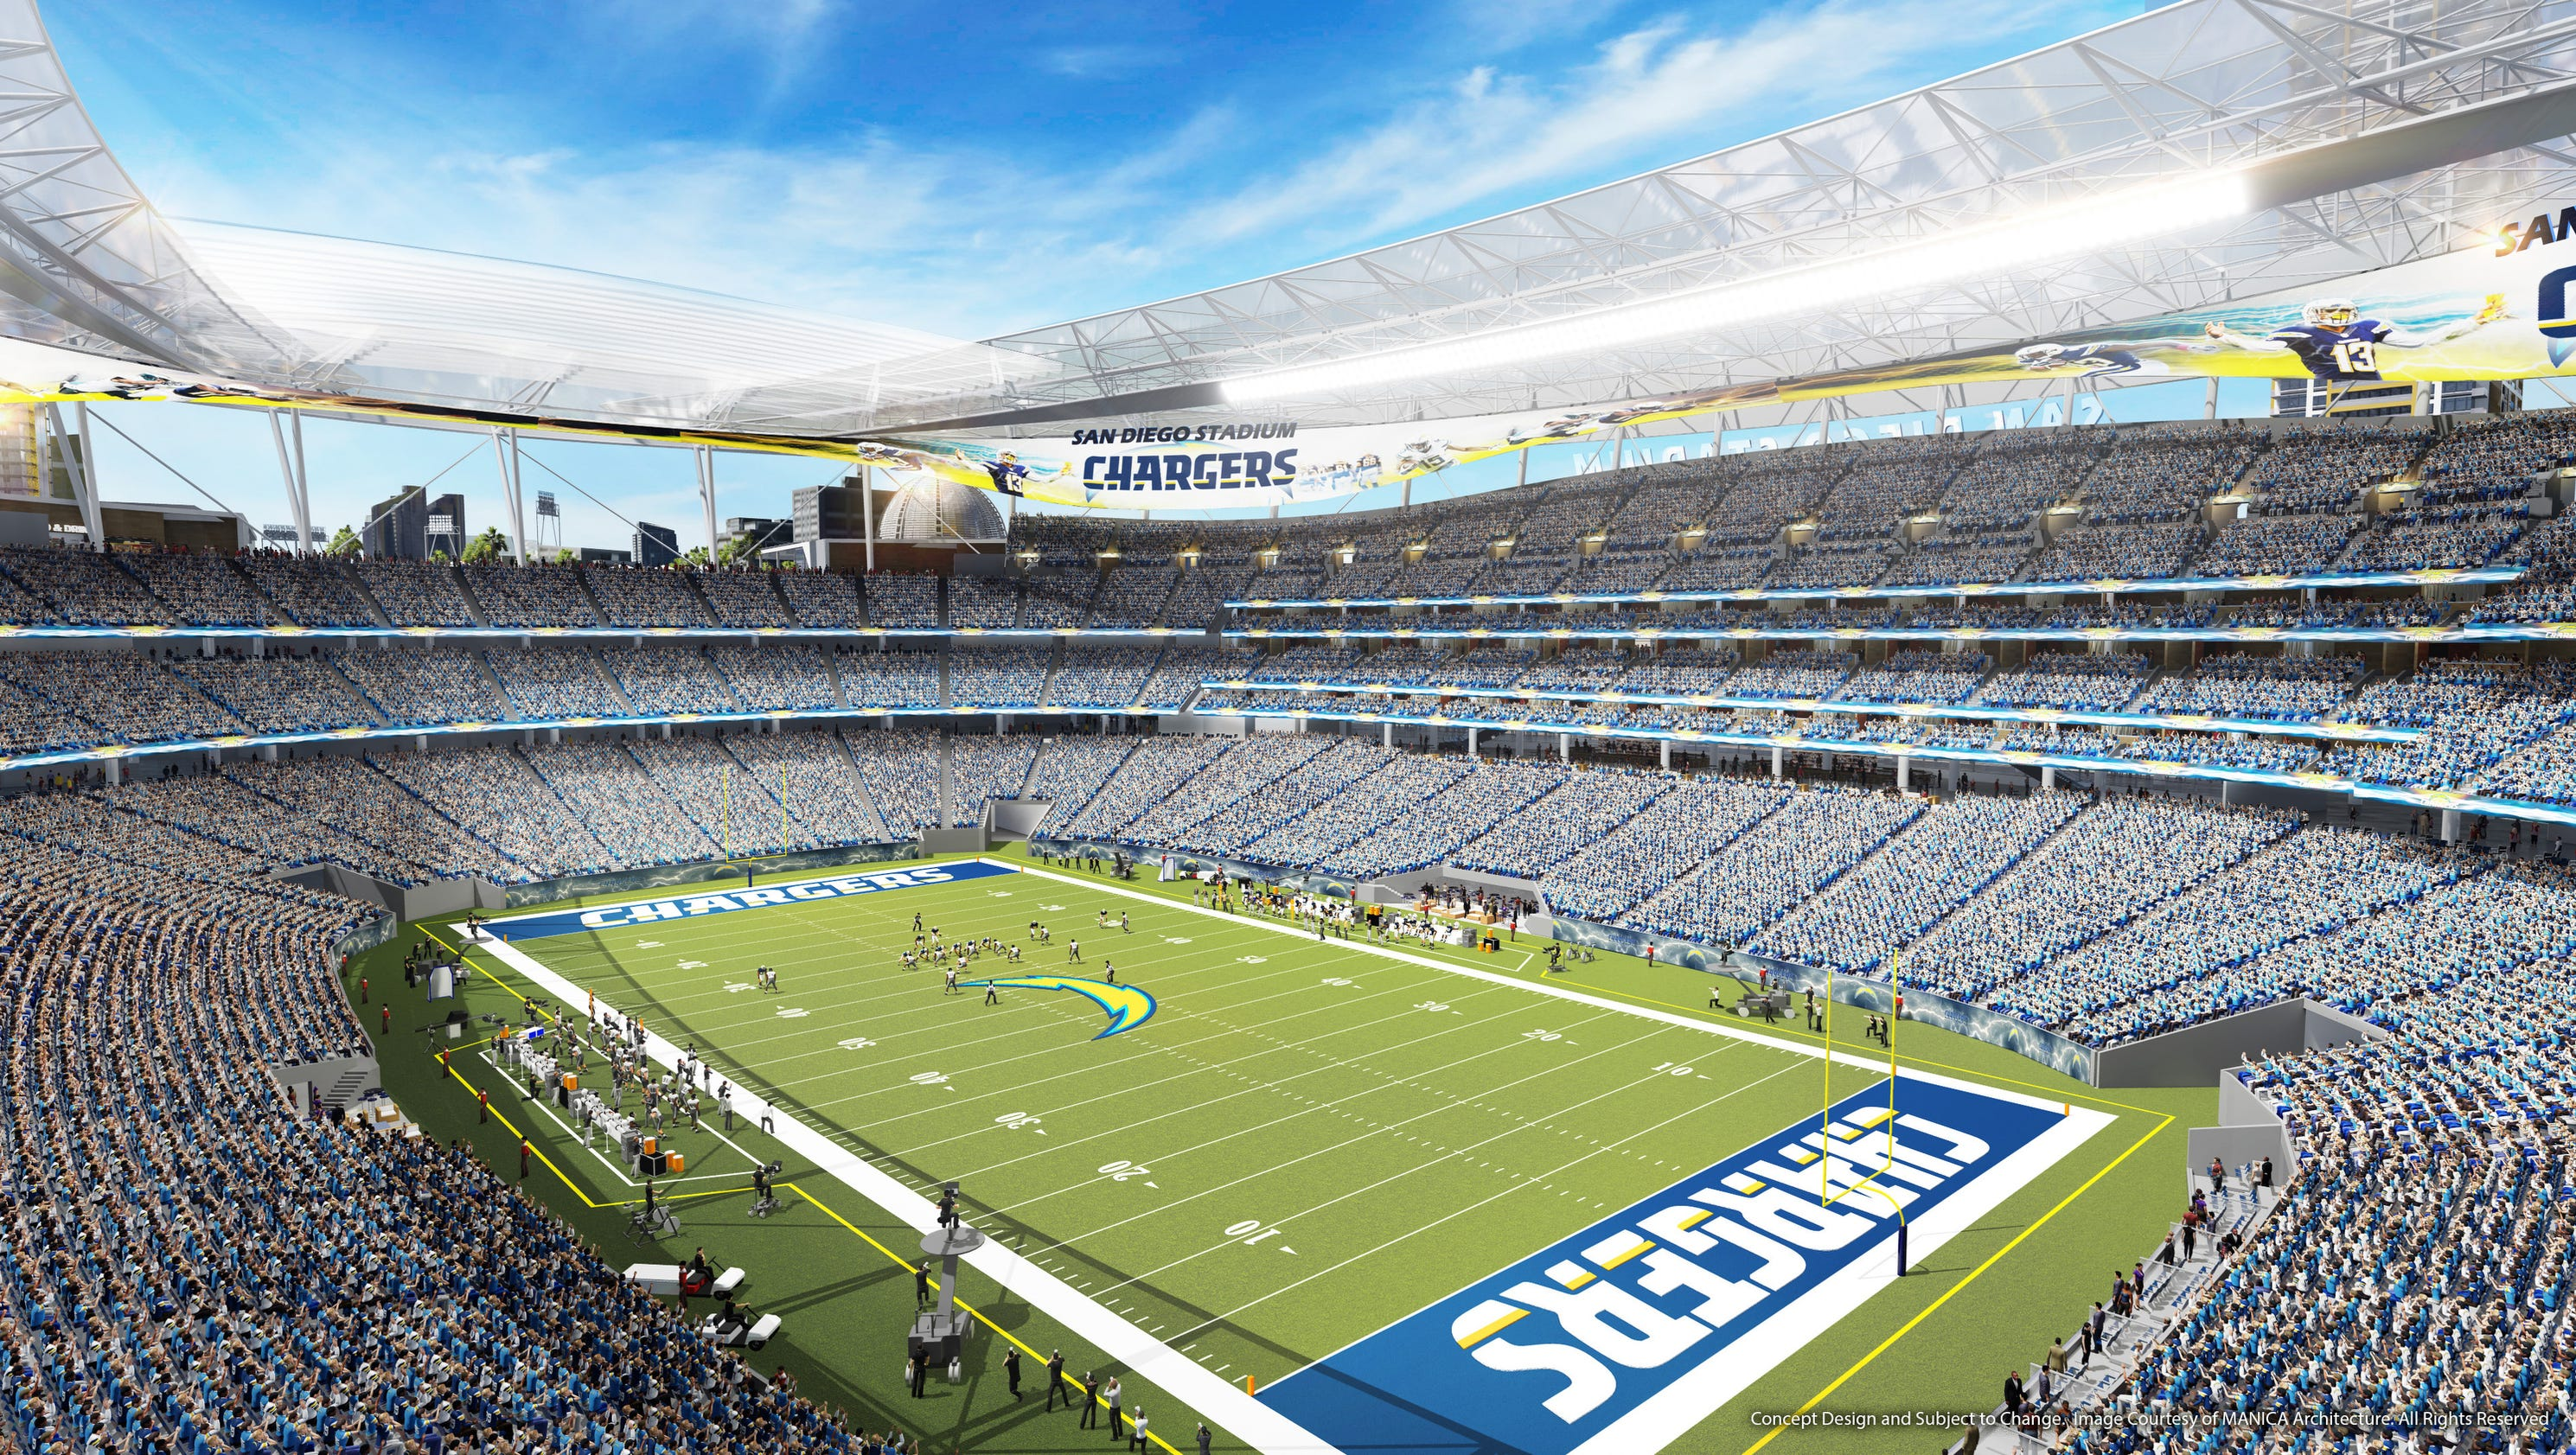 San Diego Should Say No To Public Money For New Chargers